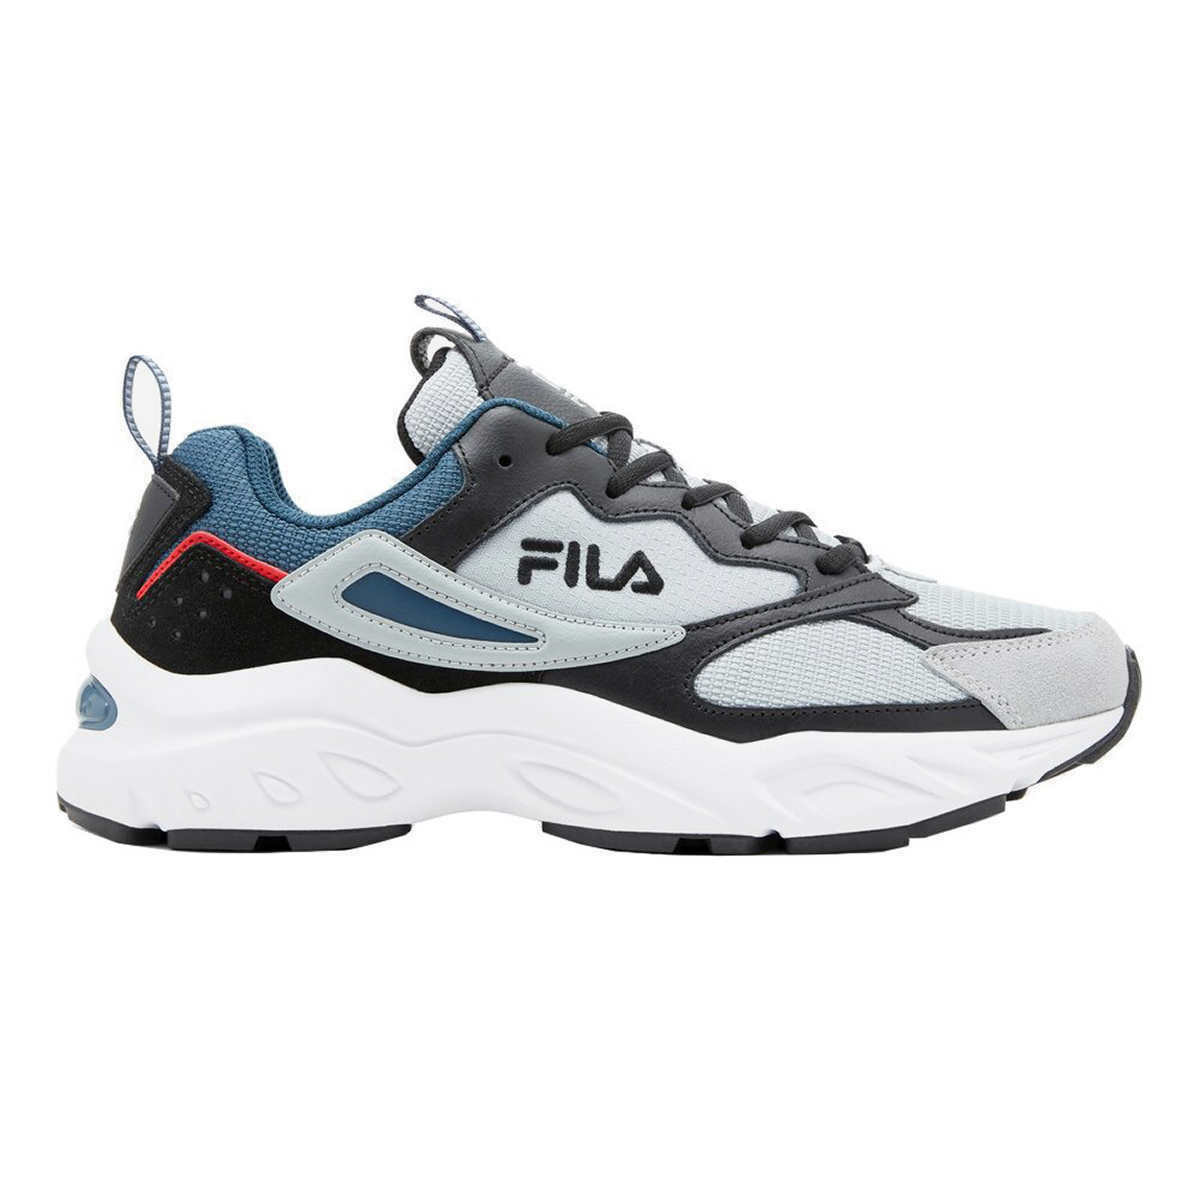 NEW Fila Men's Recollector Shoe Select Size Free Shipping